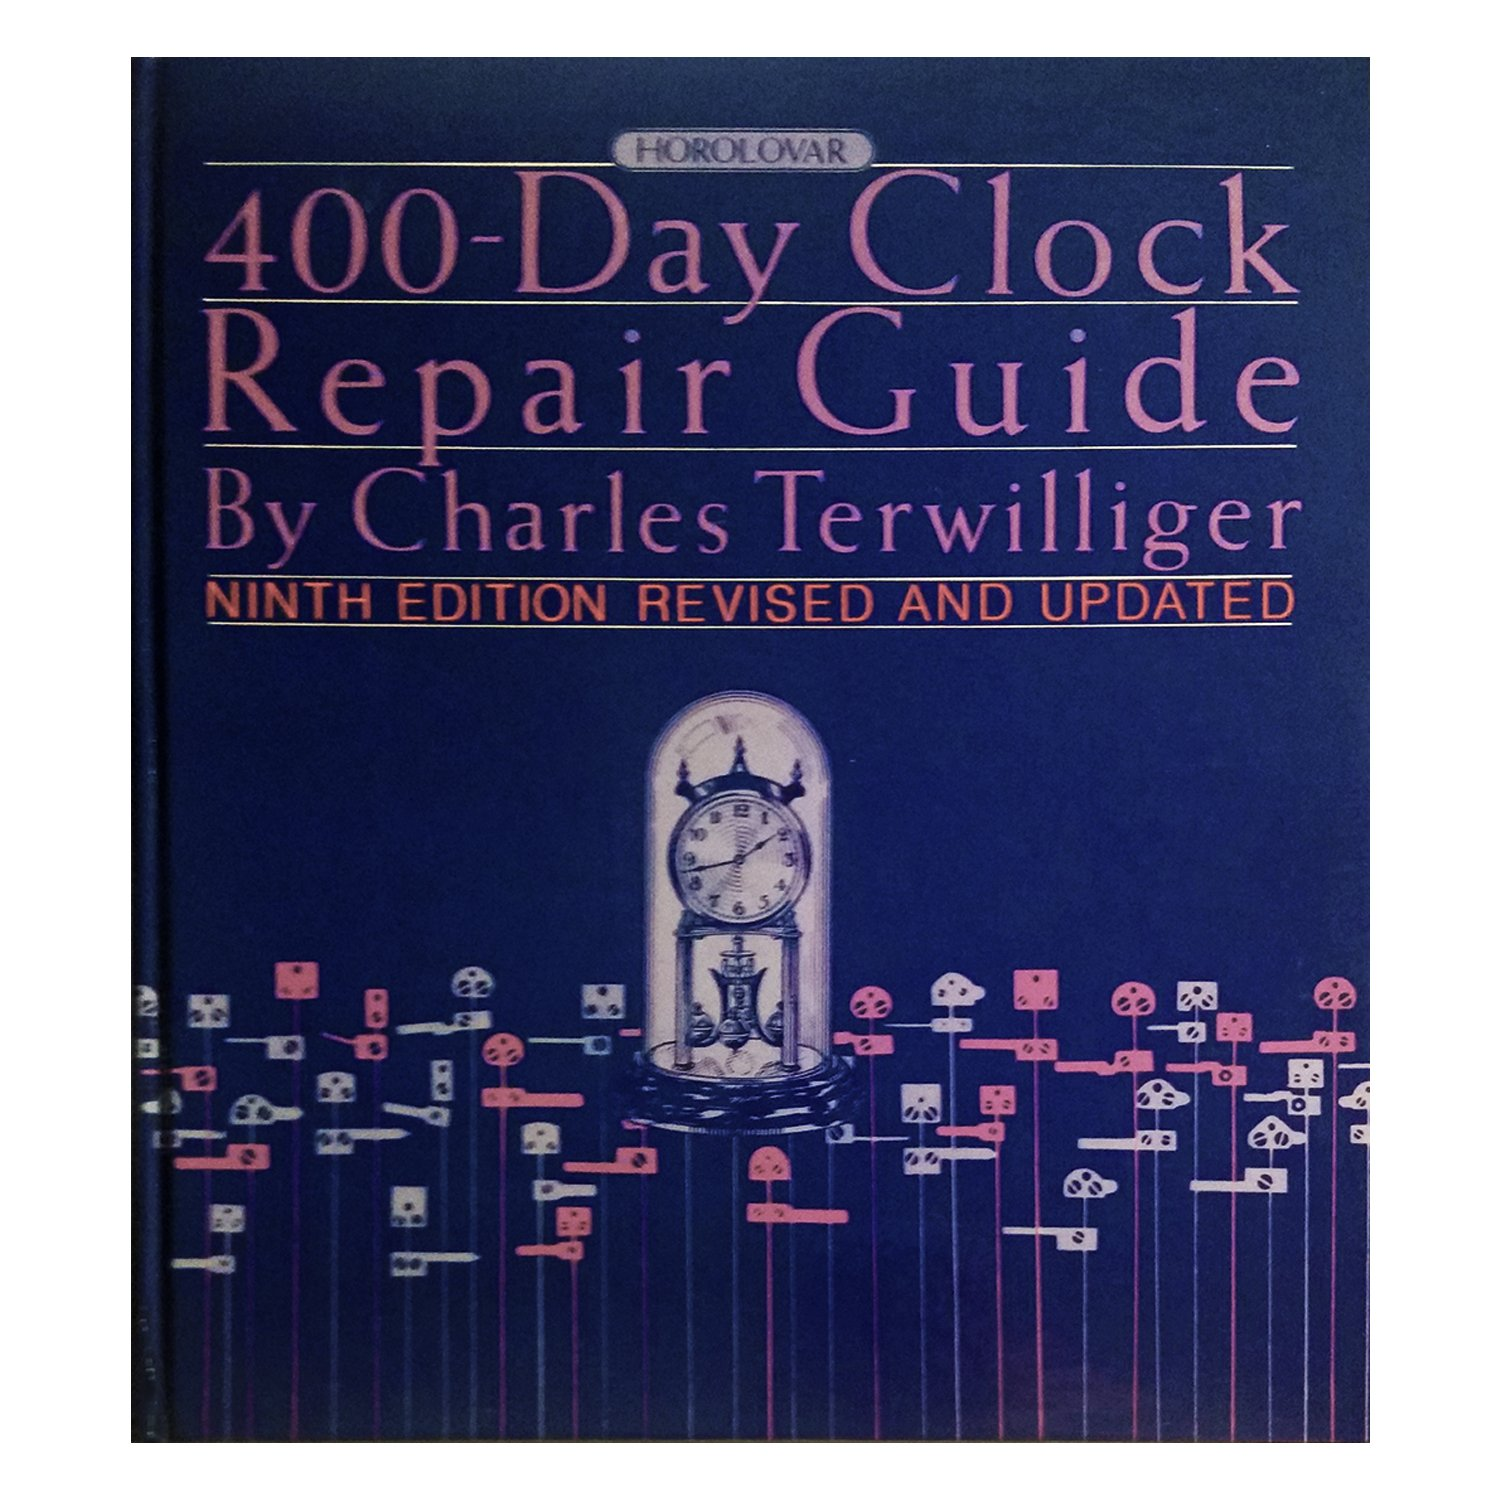 400-Day Clock Repair Guide, 9th Edition: Charles Terwilliger: Amazon.com:  Books